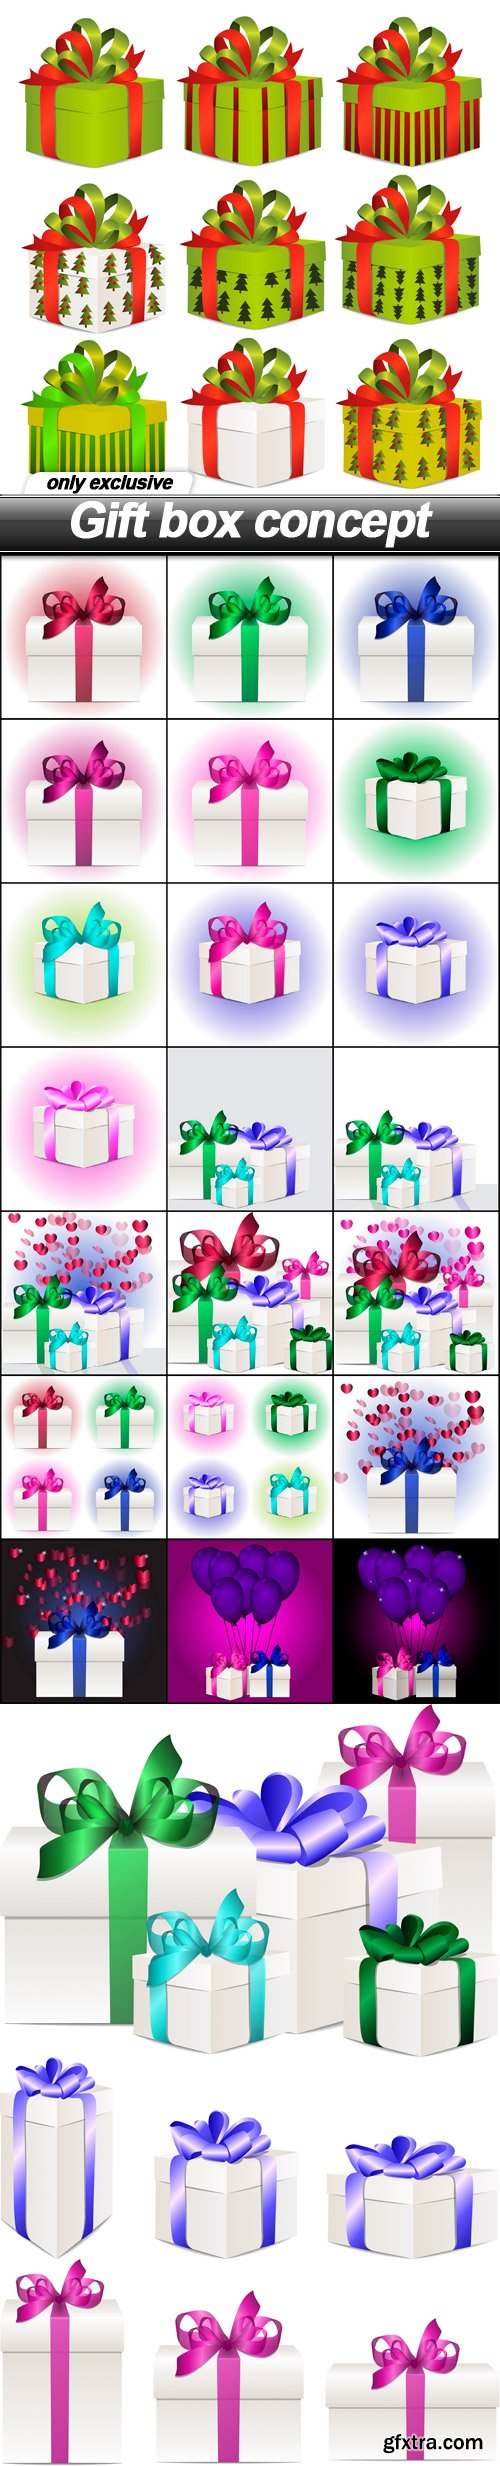 Gift box concept - 25 EPS